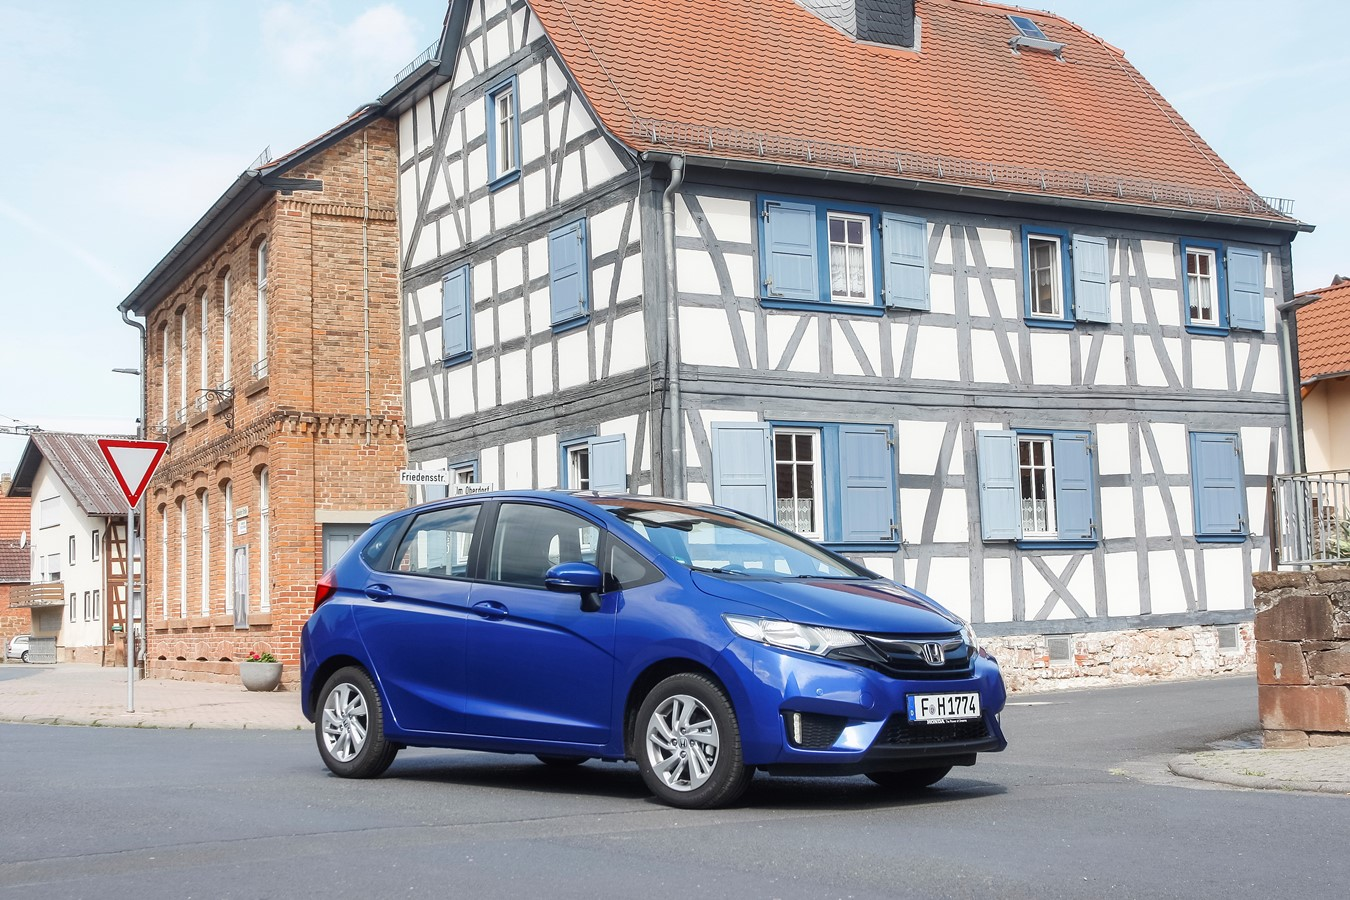 Honda scoops two Women's World Car of the Year awards